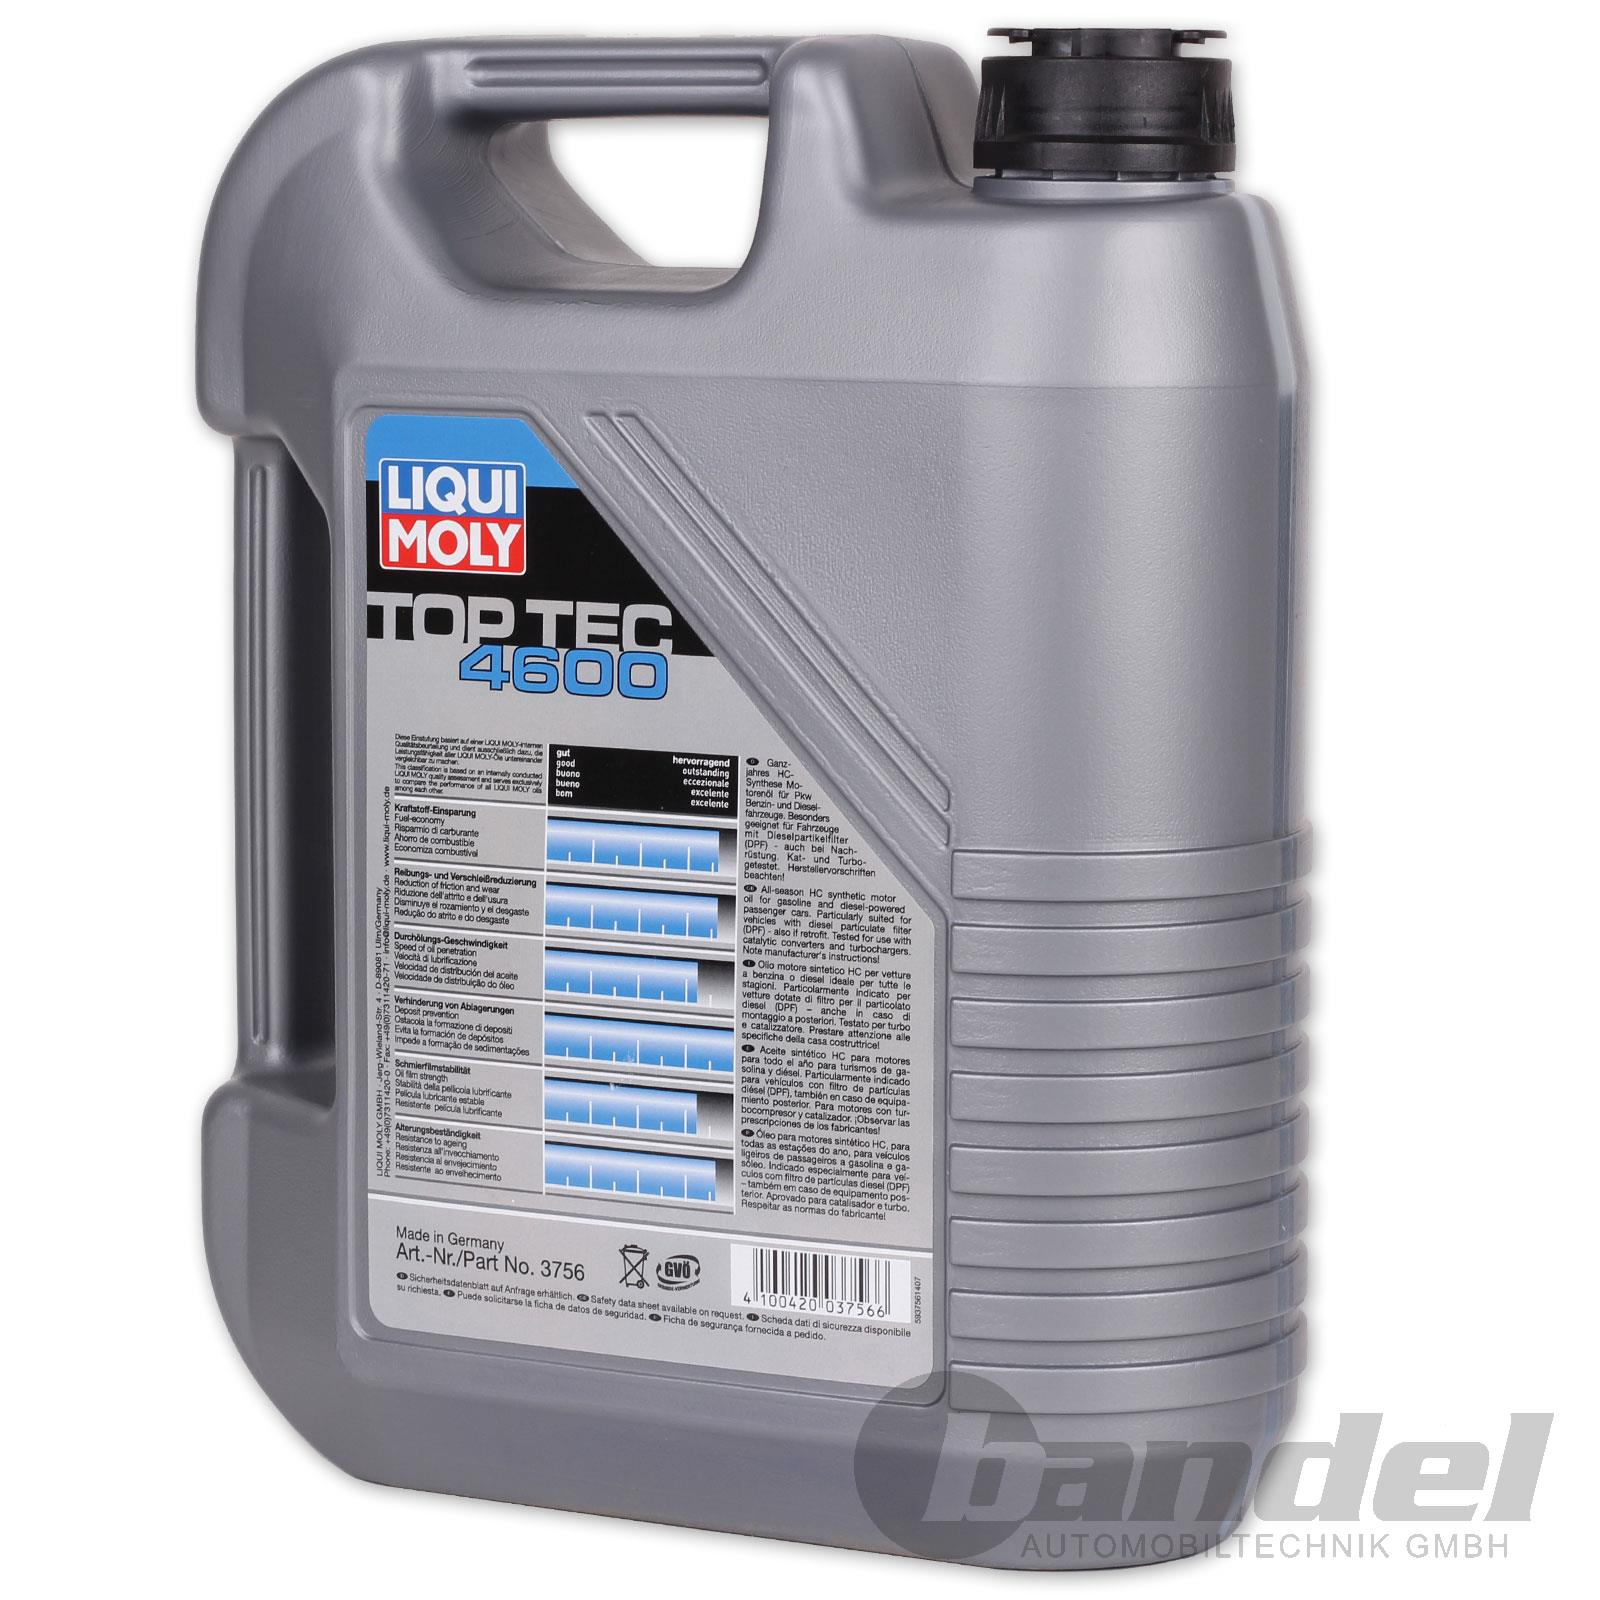 8 18 l liqui moly top tec 4600 5w 30 motor l l 5 liter opel gm dexos 2 vw ebay. Black Bedroom Furniture Sets. Home Design Ideas